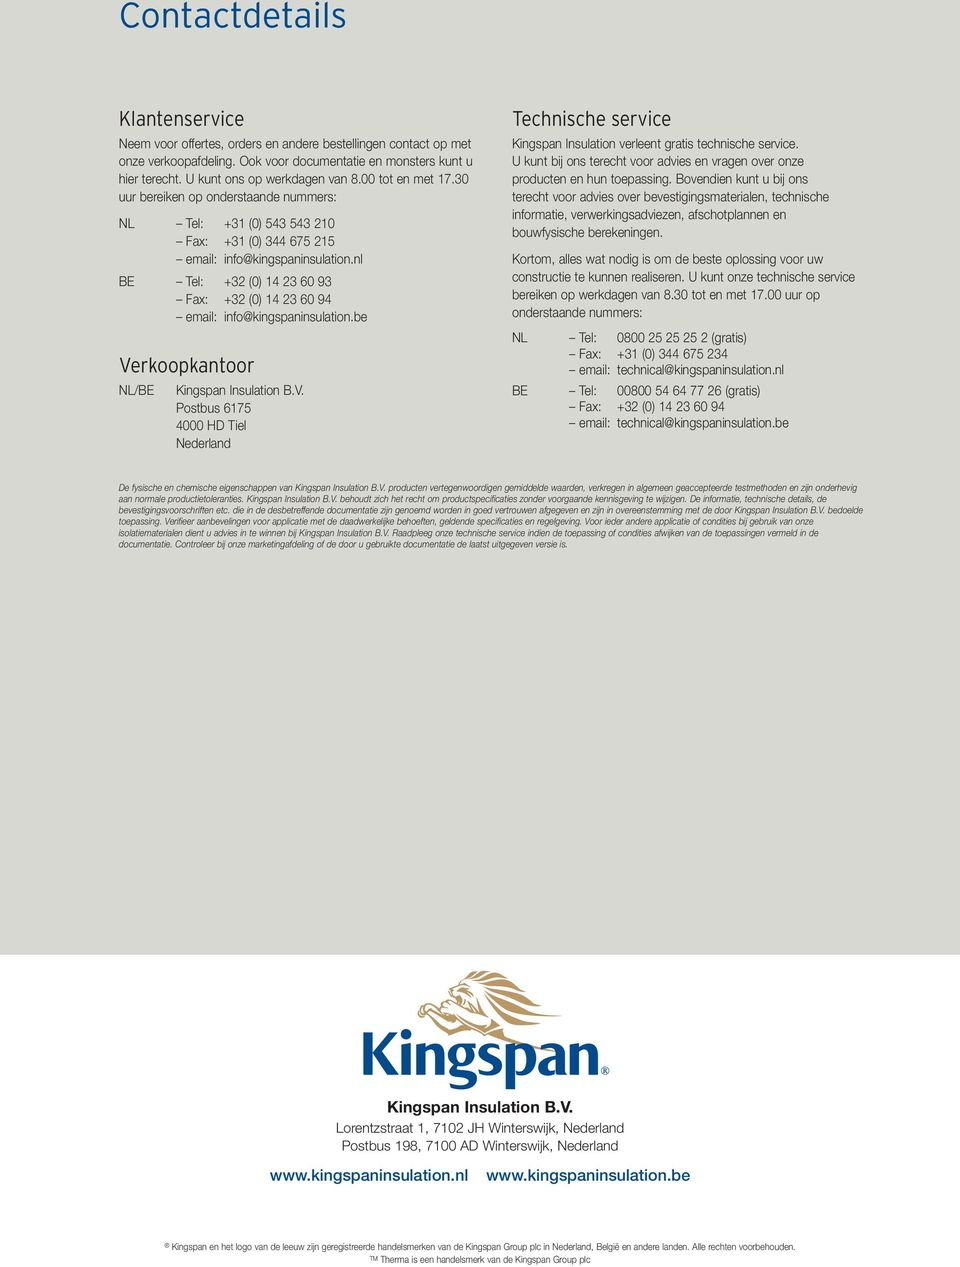 nl BE Tel: +32 (0) 14 23 60 93 Fax: +32 (0) 14 23 60 94 email: info@kingspaninsulation.be Ve